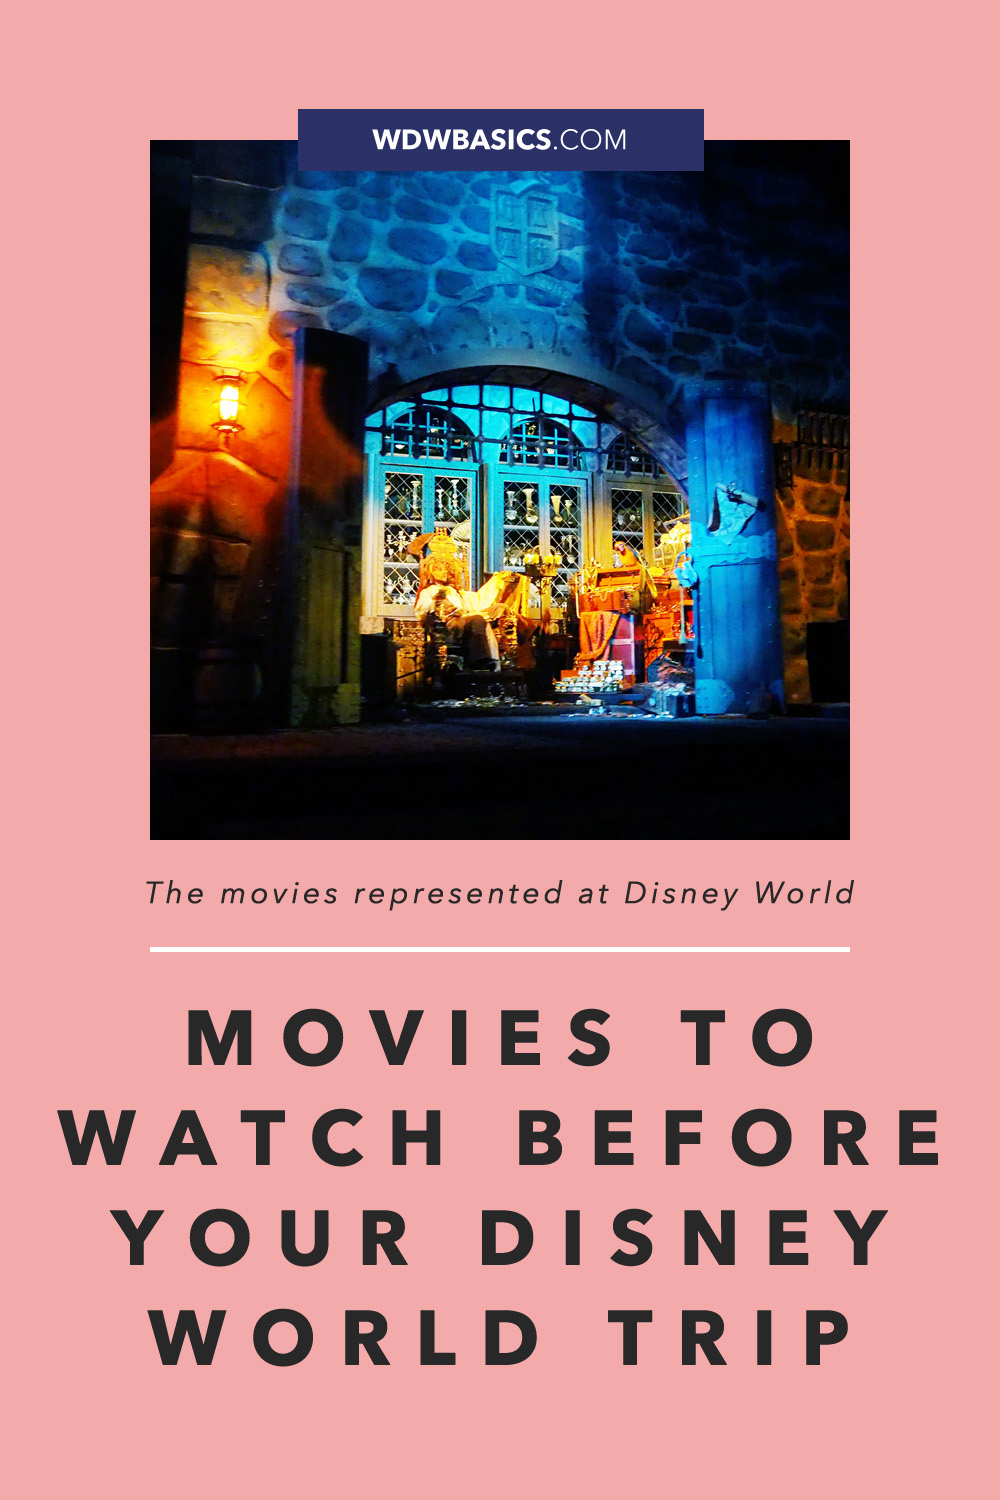 Movies to Watch Before Your Disney World Trip